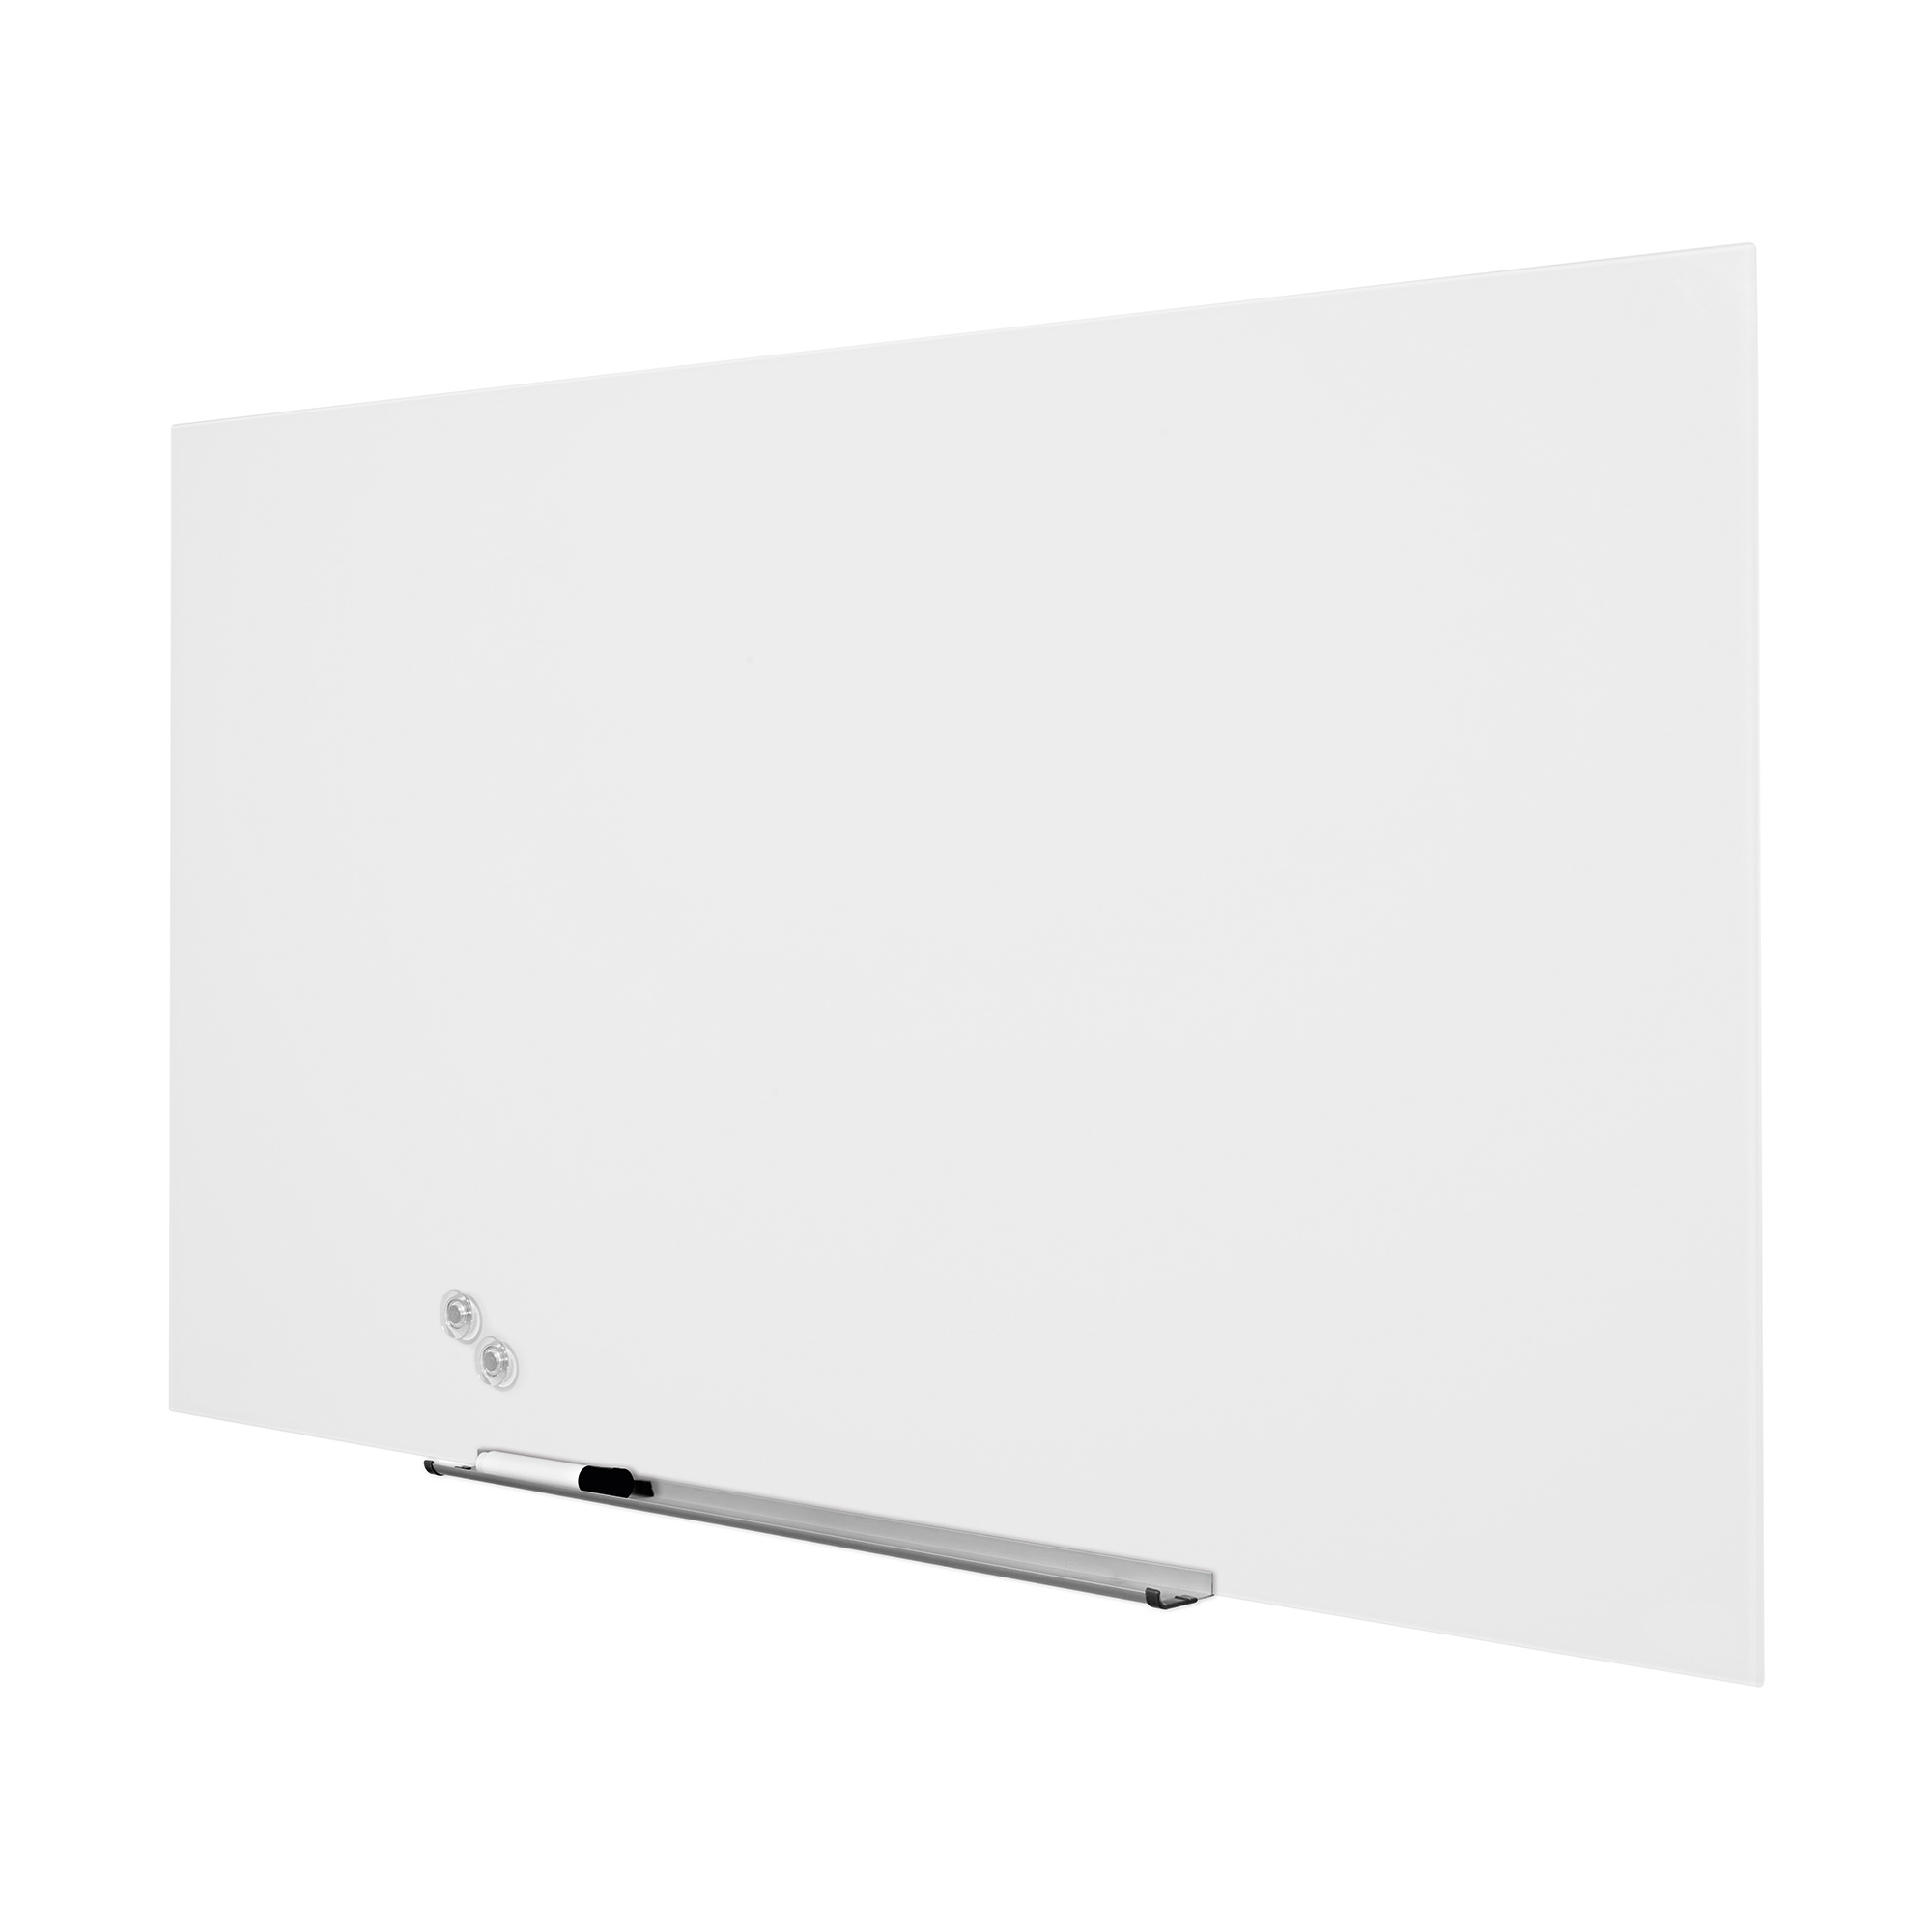 5 Star Office Glass Board Magnetic with Wall Fixings W1264xH711mm White